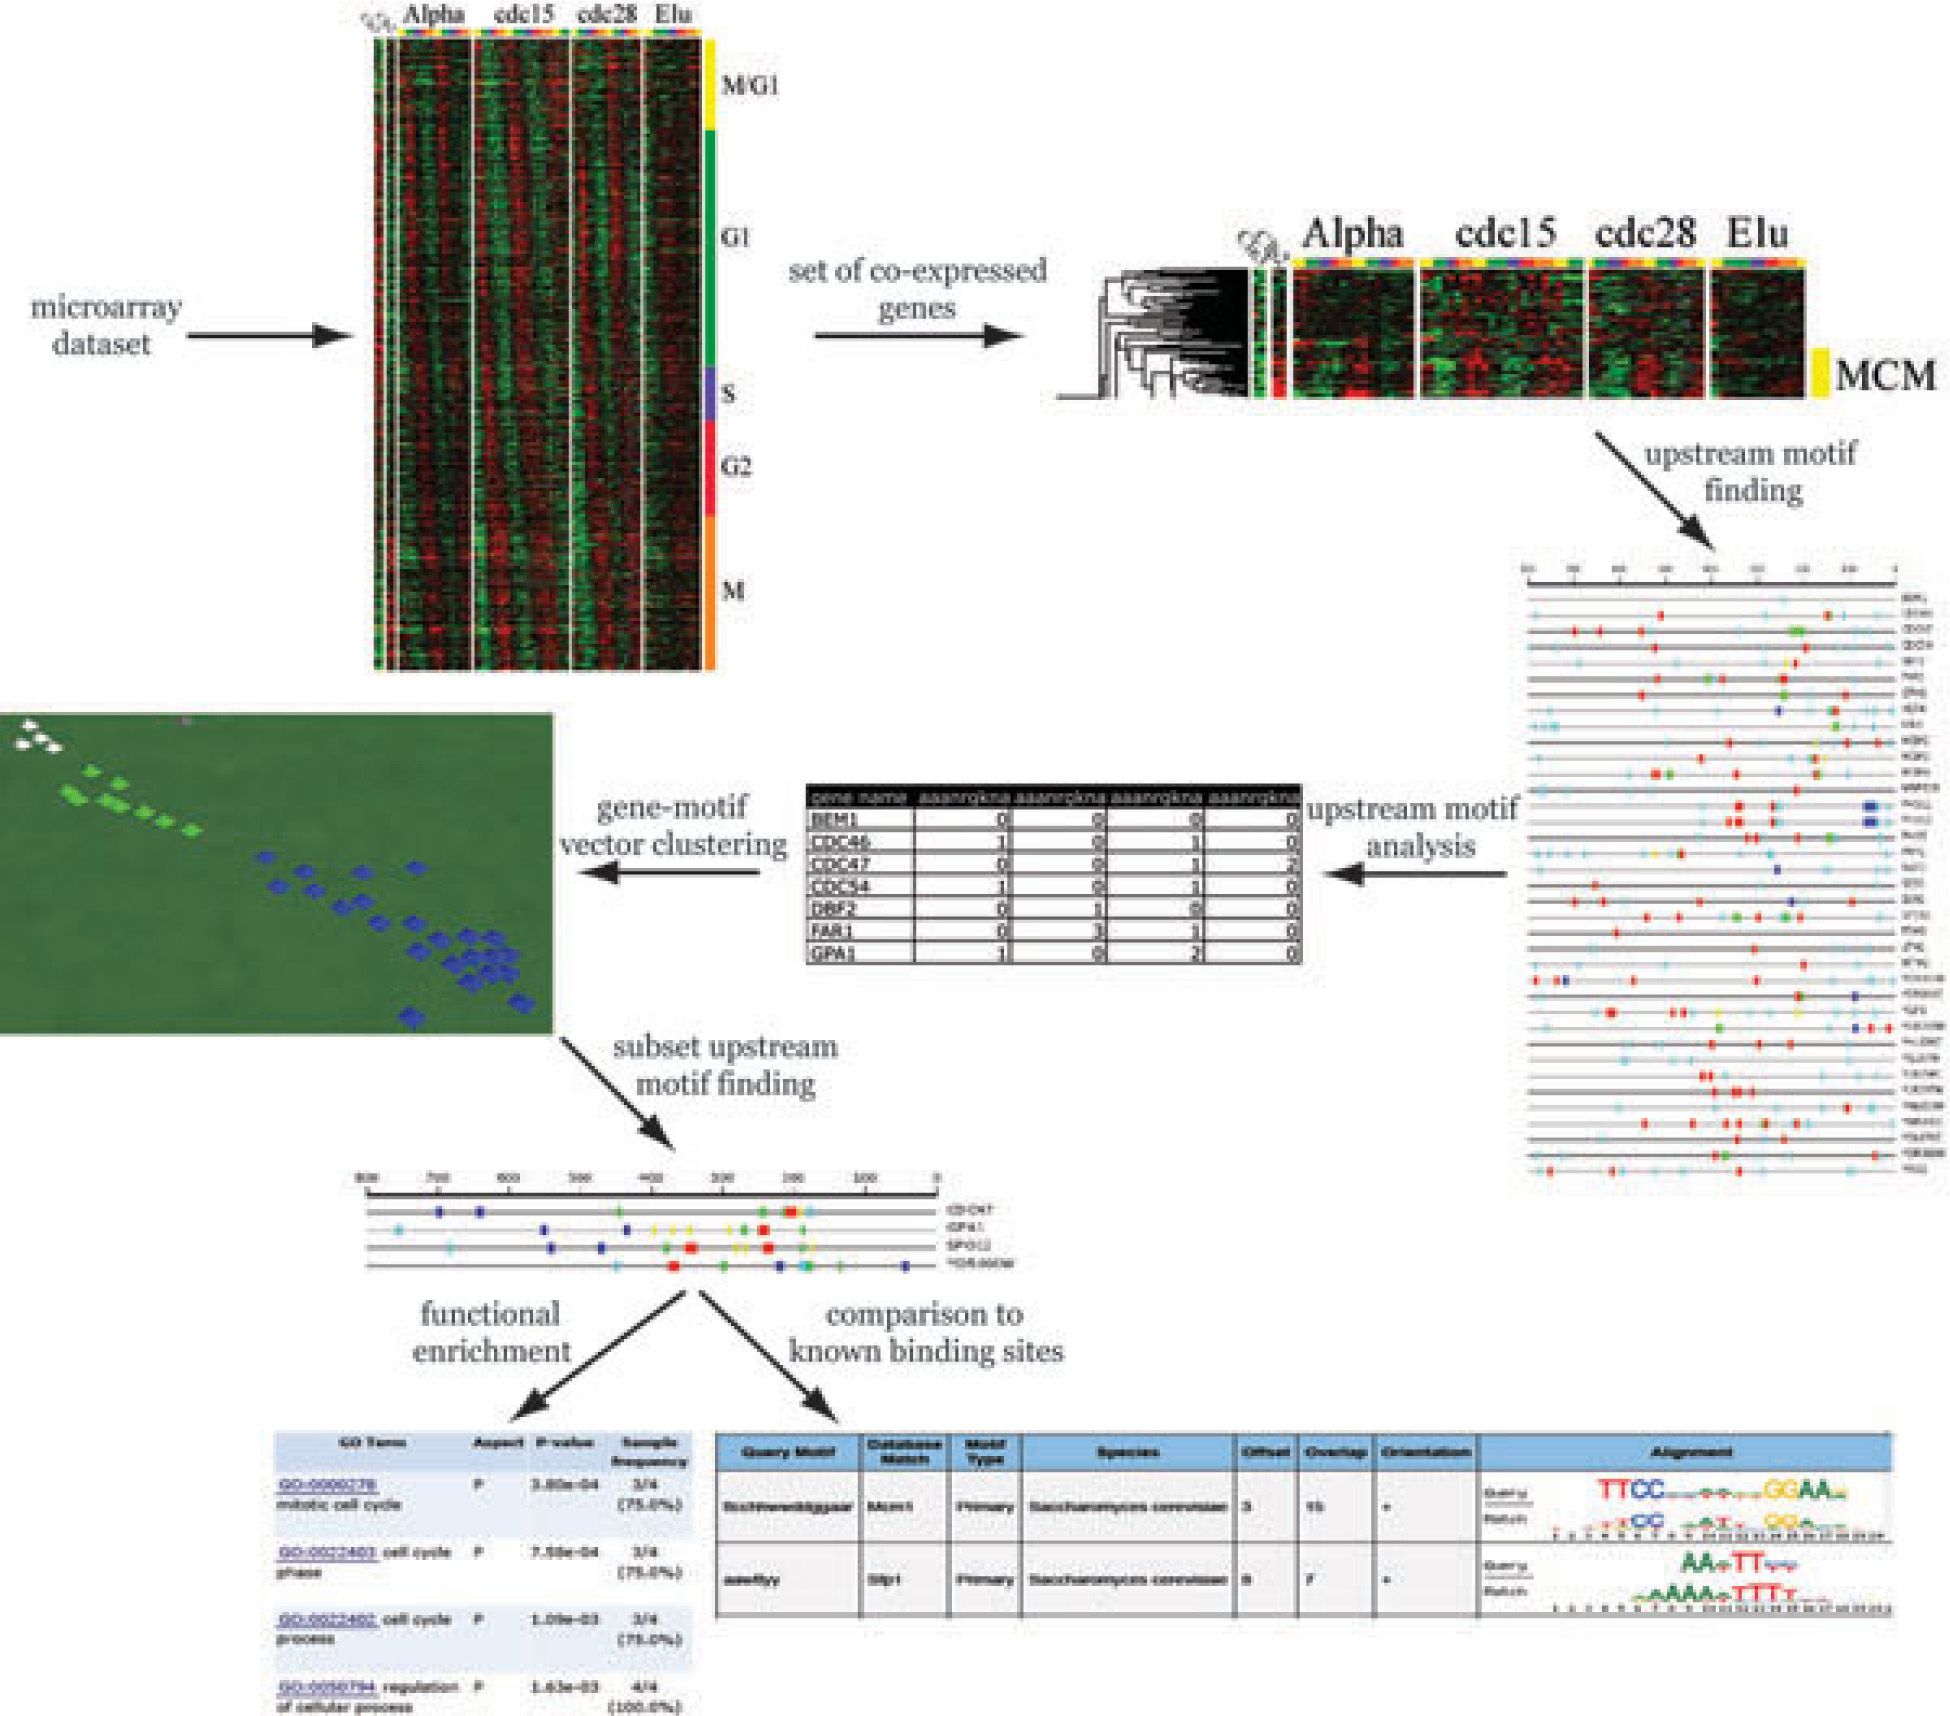 http://static-content.springer.com/image/art%3A10.1186%2F1471-2164-11-S2-S8/MediaObjects/12864_2010_Article_3435_Fig1_HTML.jpg